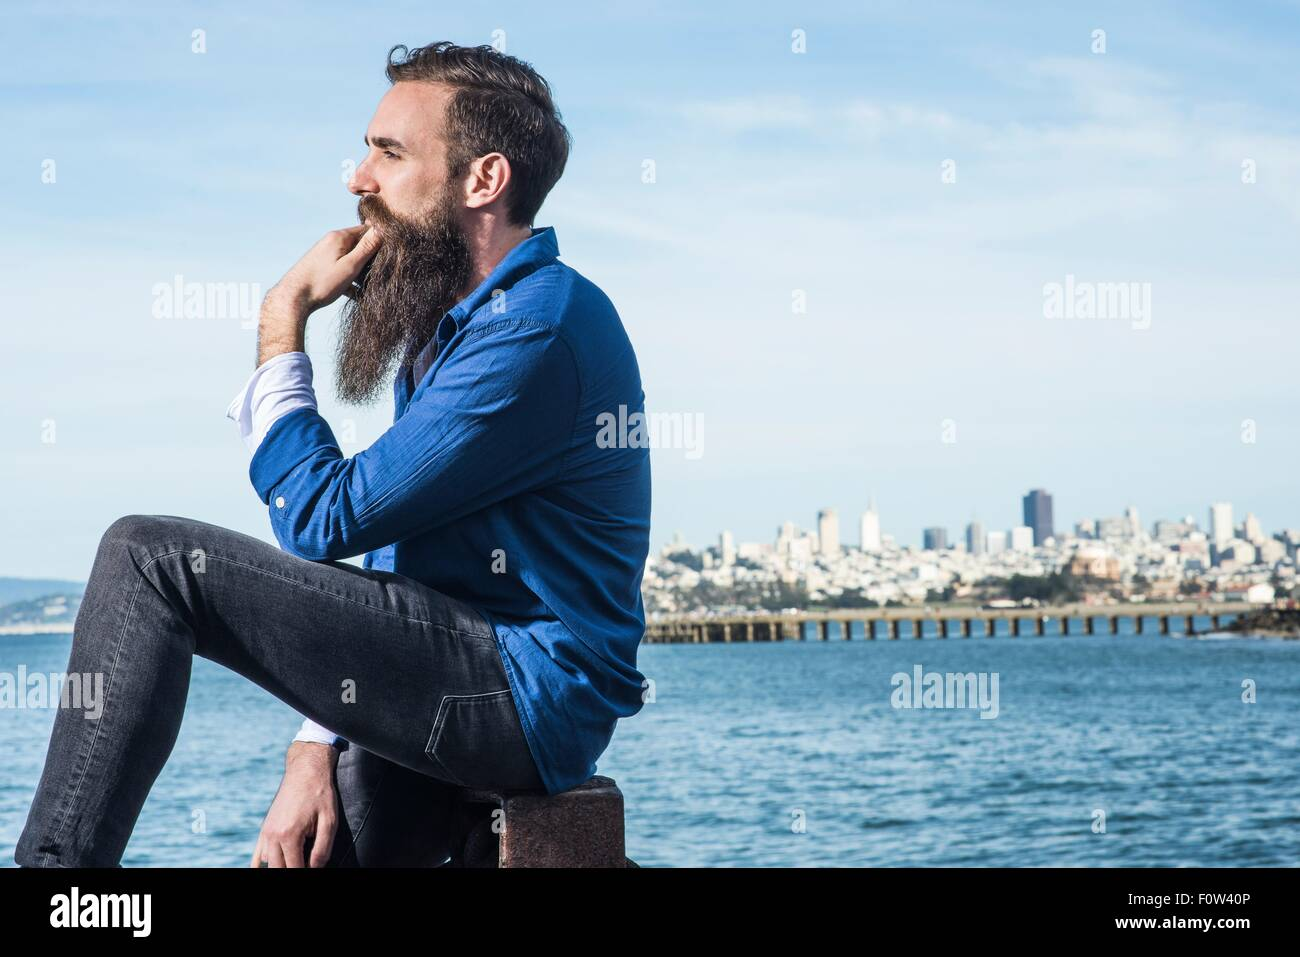 Man with beard sitting at Port Point, San Francisco, California, USA - Stock Image